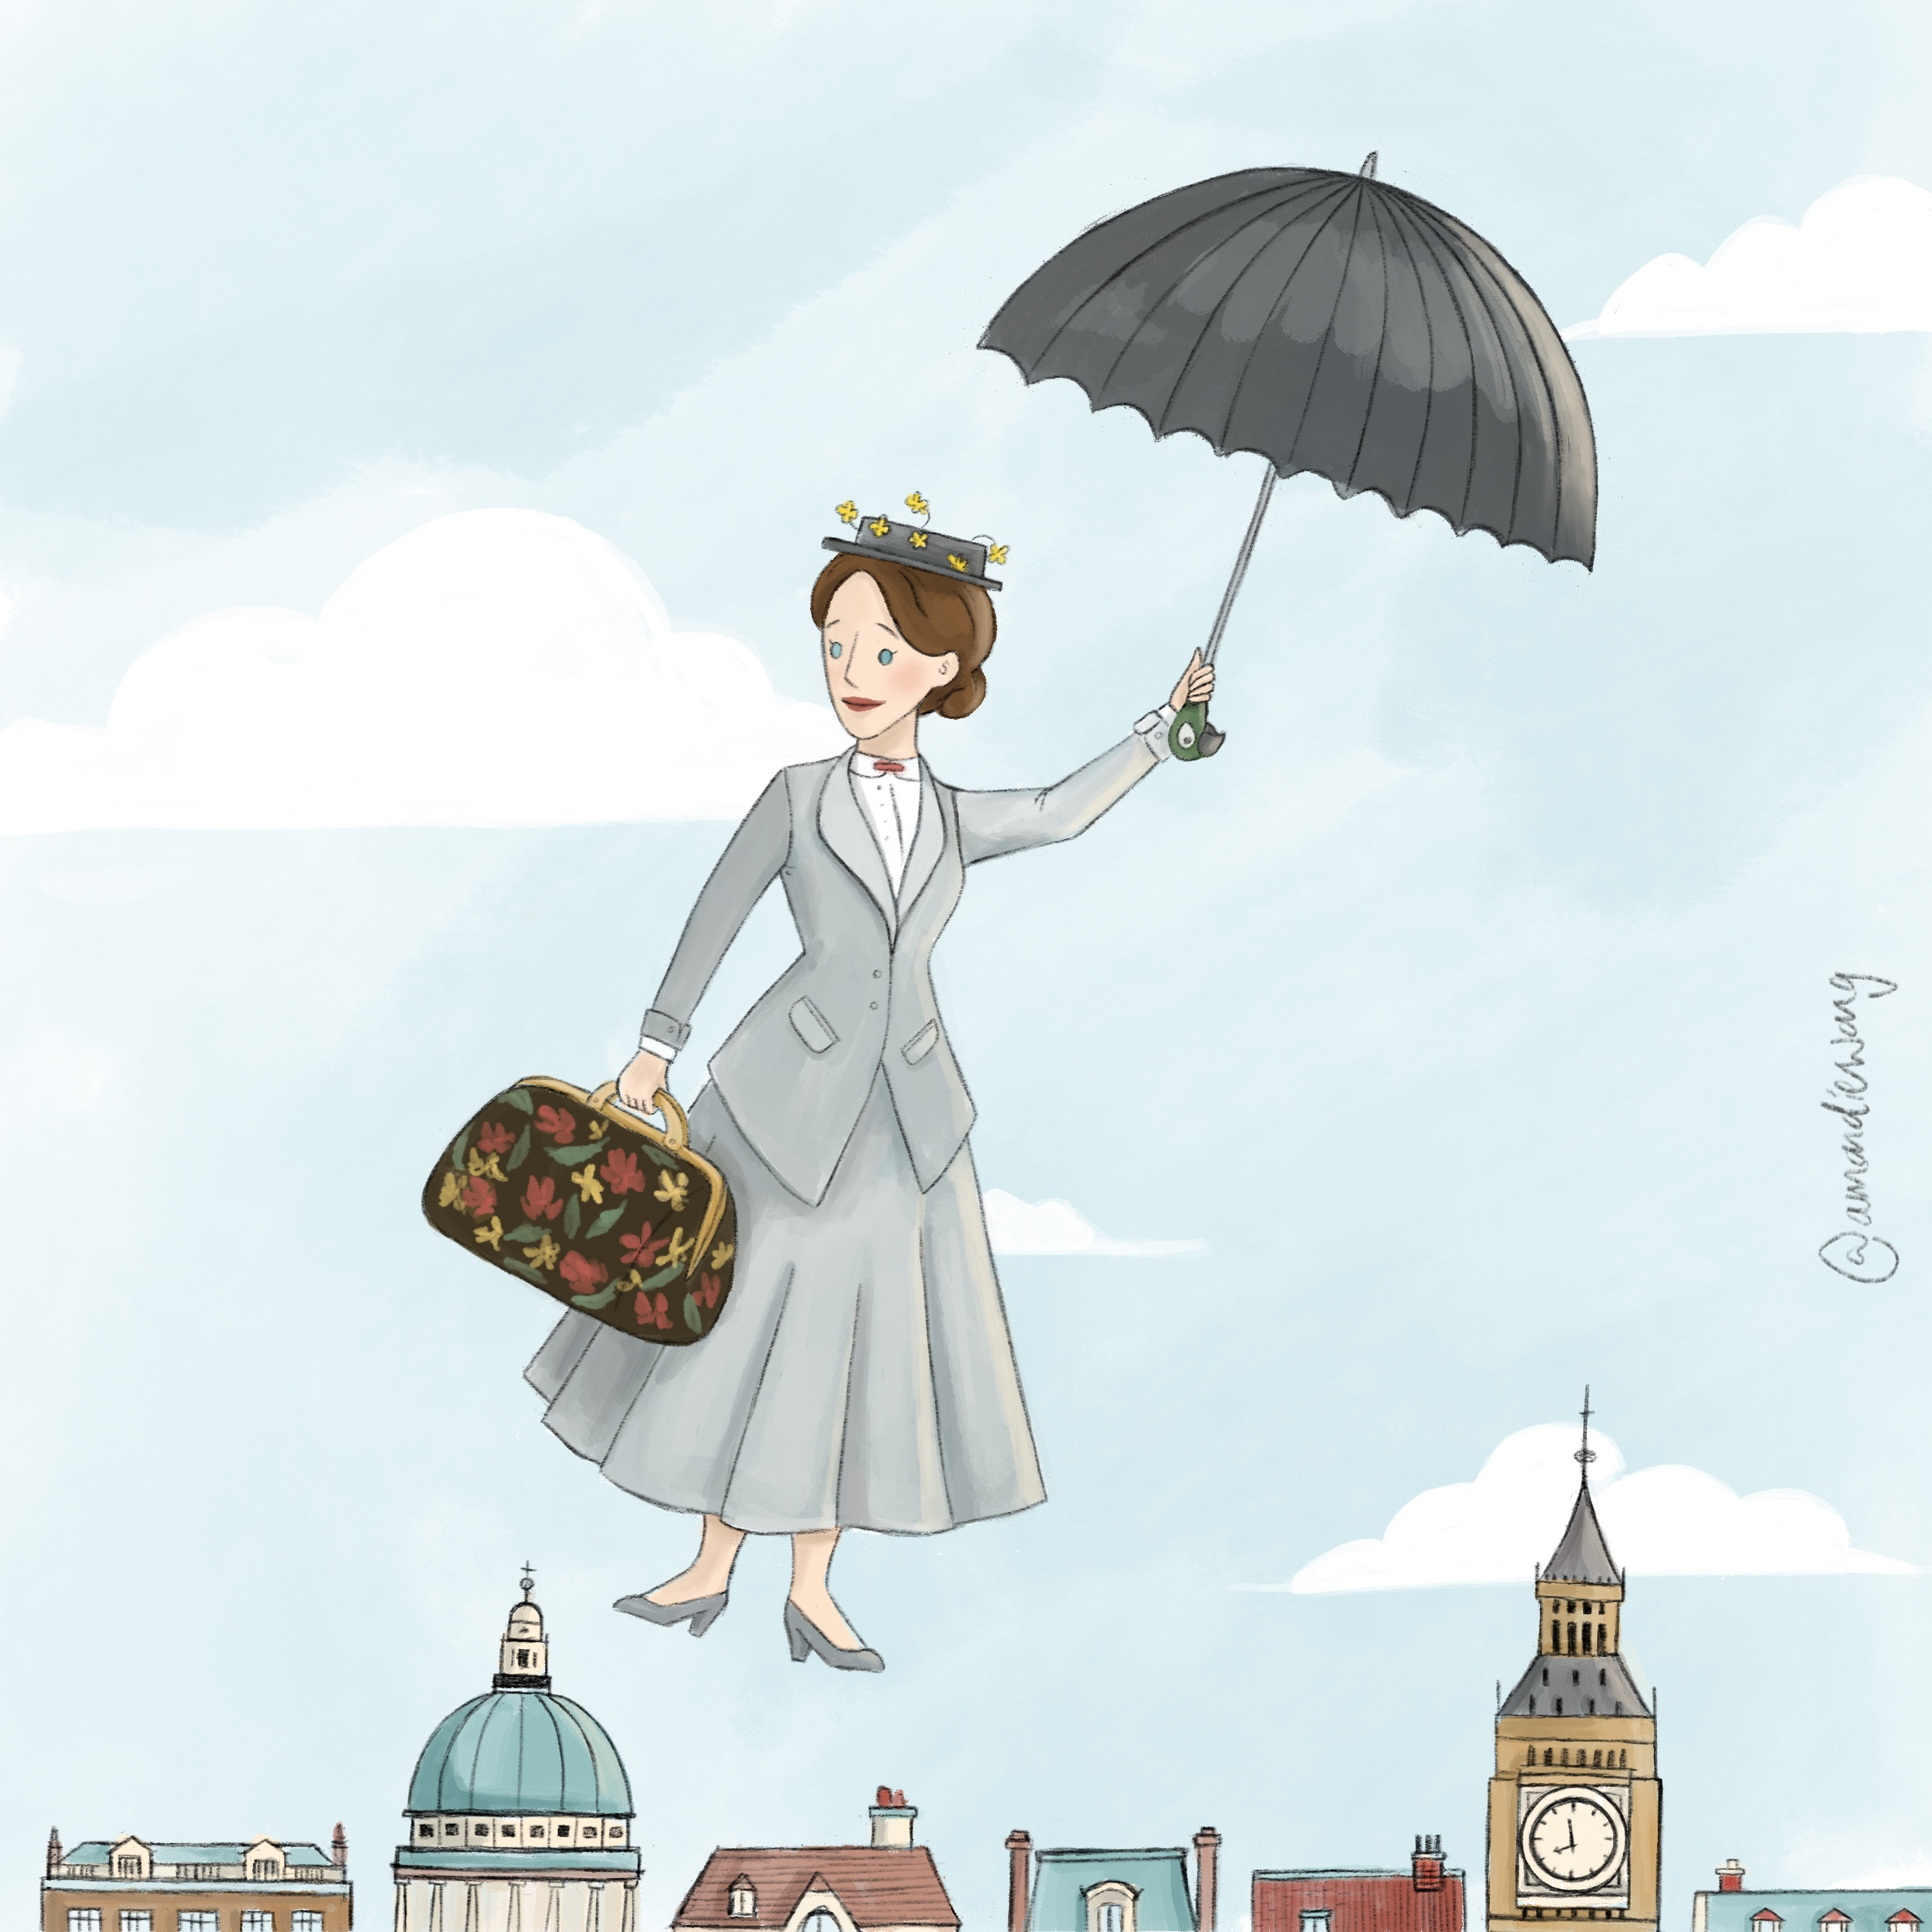 Illustration of Mary Poppins floating over London city